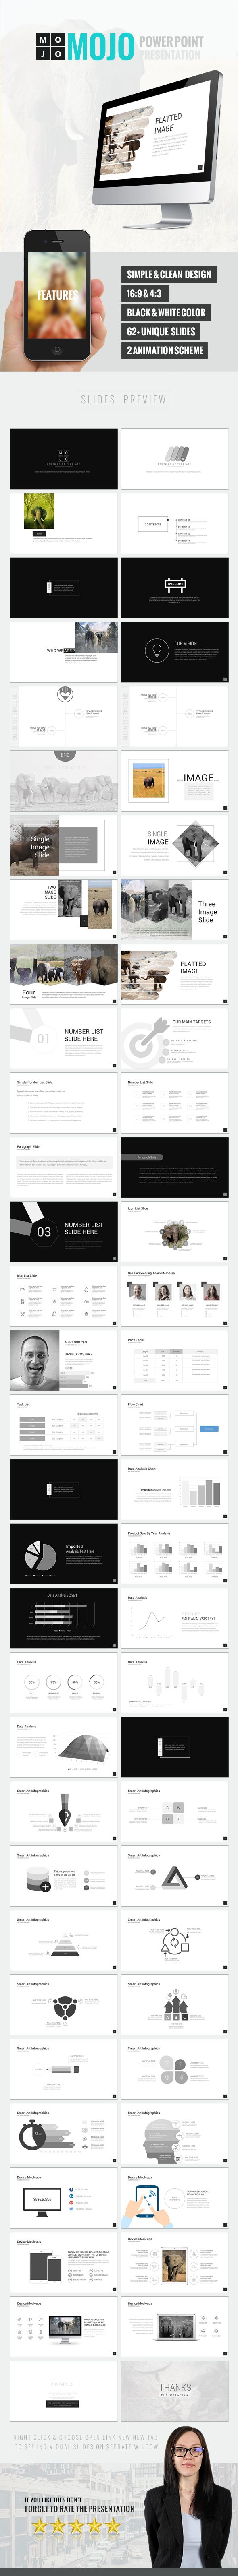 Mojo Power Point Presentation — Powerpoint PPTX #professional #presentation • Download ➝ https://graphicriver.net/item/mojo-power-point-presentation/19237504?ref=pxcr